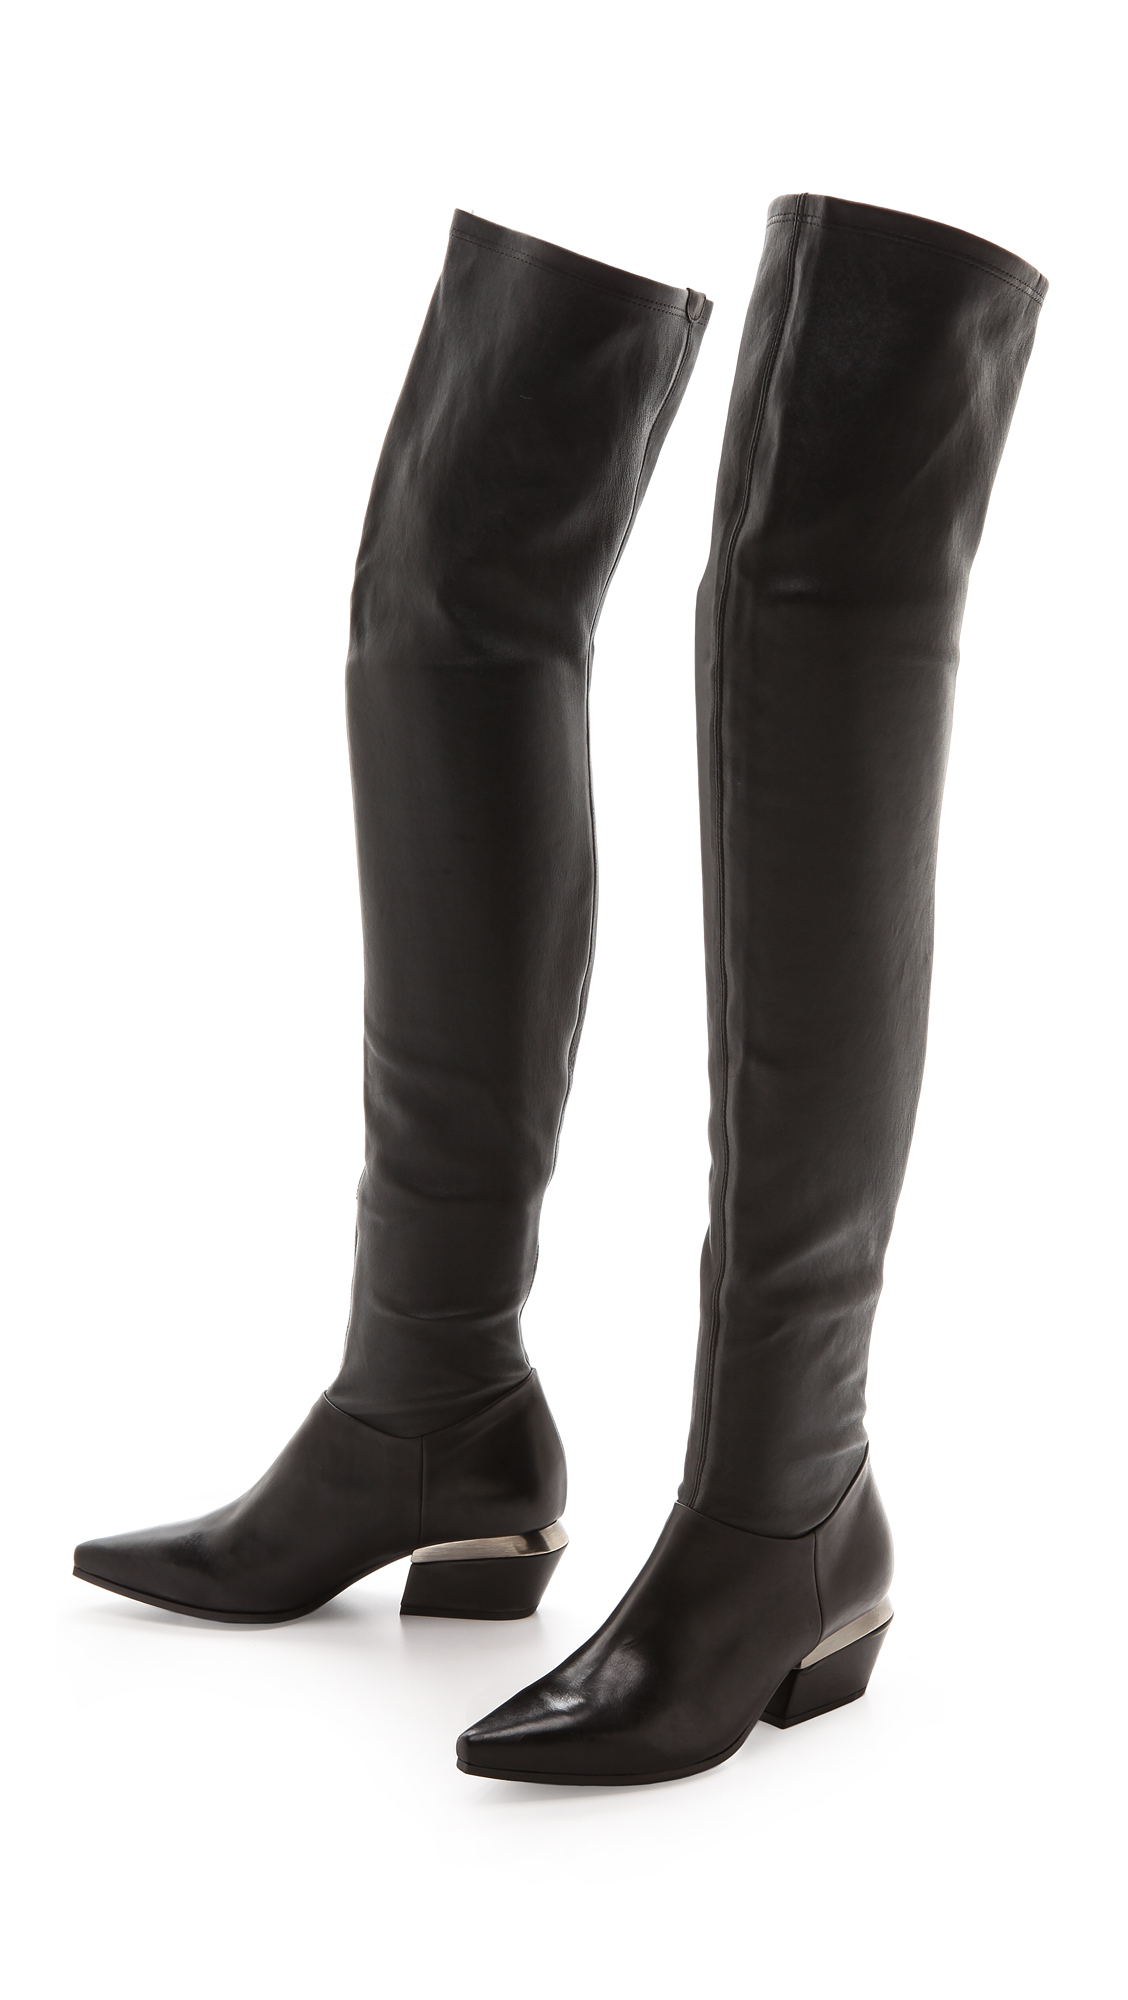 vic mati prometeo erse over the knee boots black in black lyst. Black Bedroom Furniture Sets. Home Design Ideas